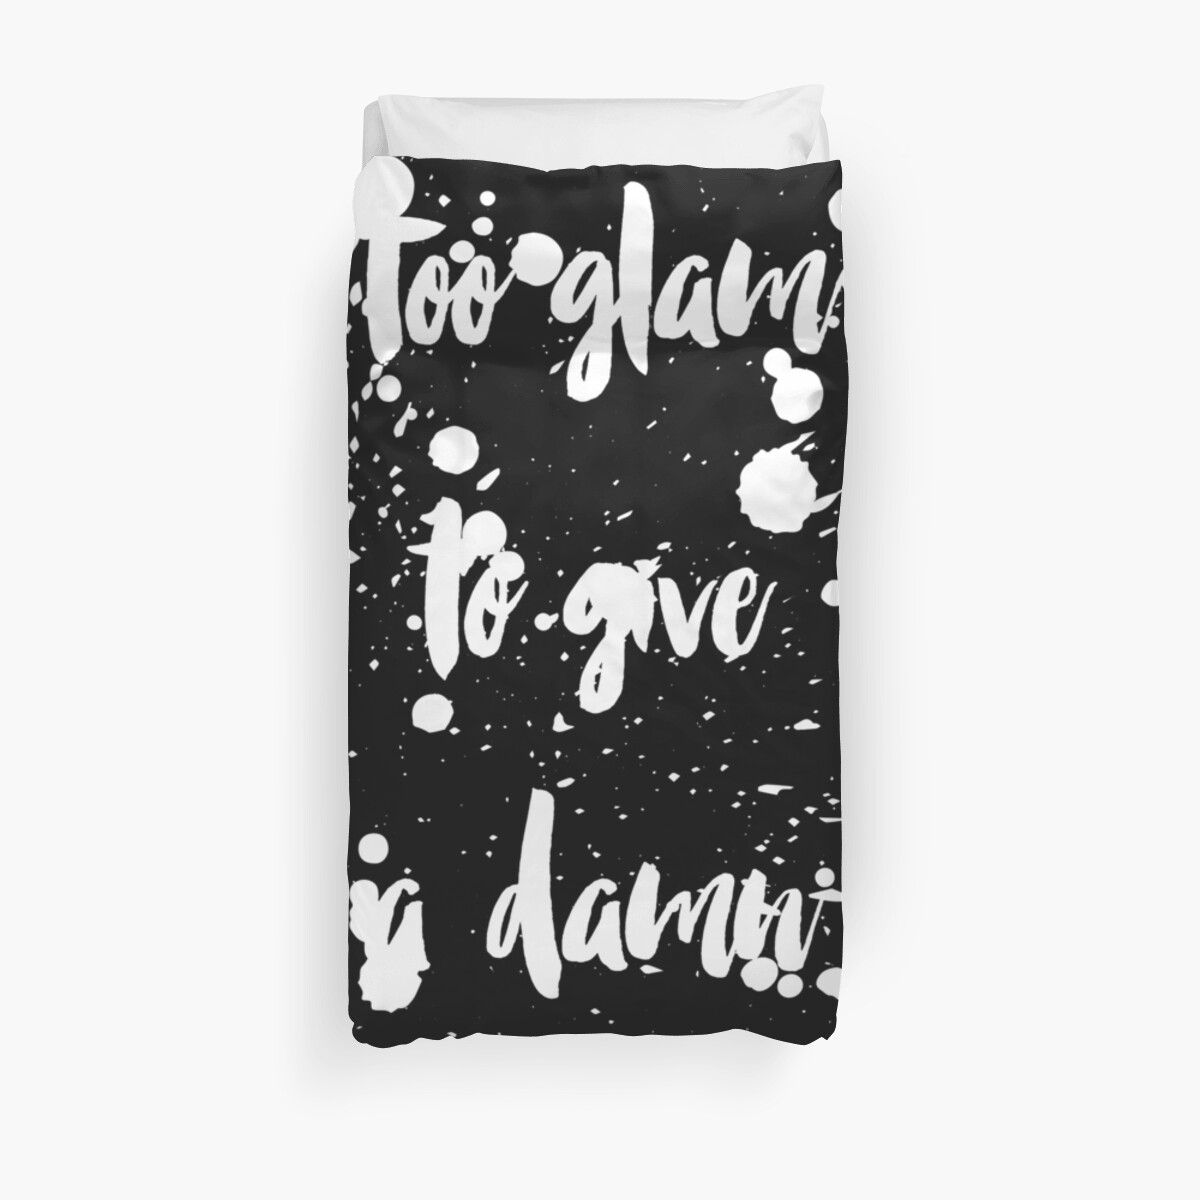 Too glam to give a damn dirty by ME Design Studio